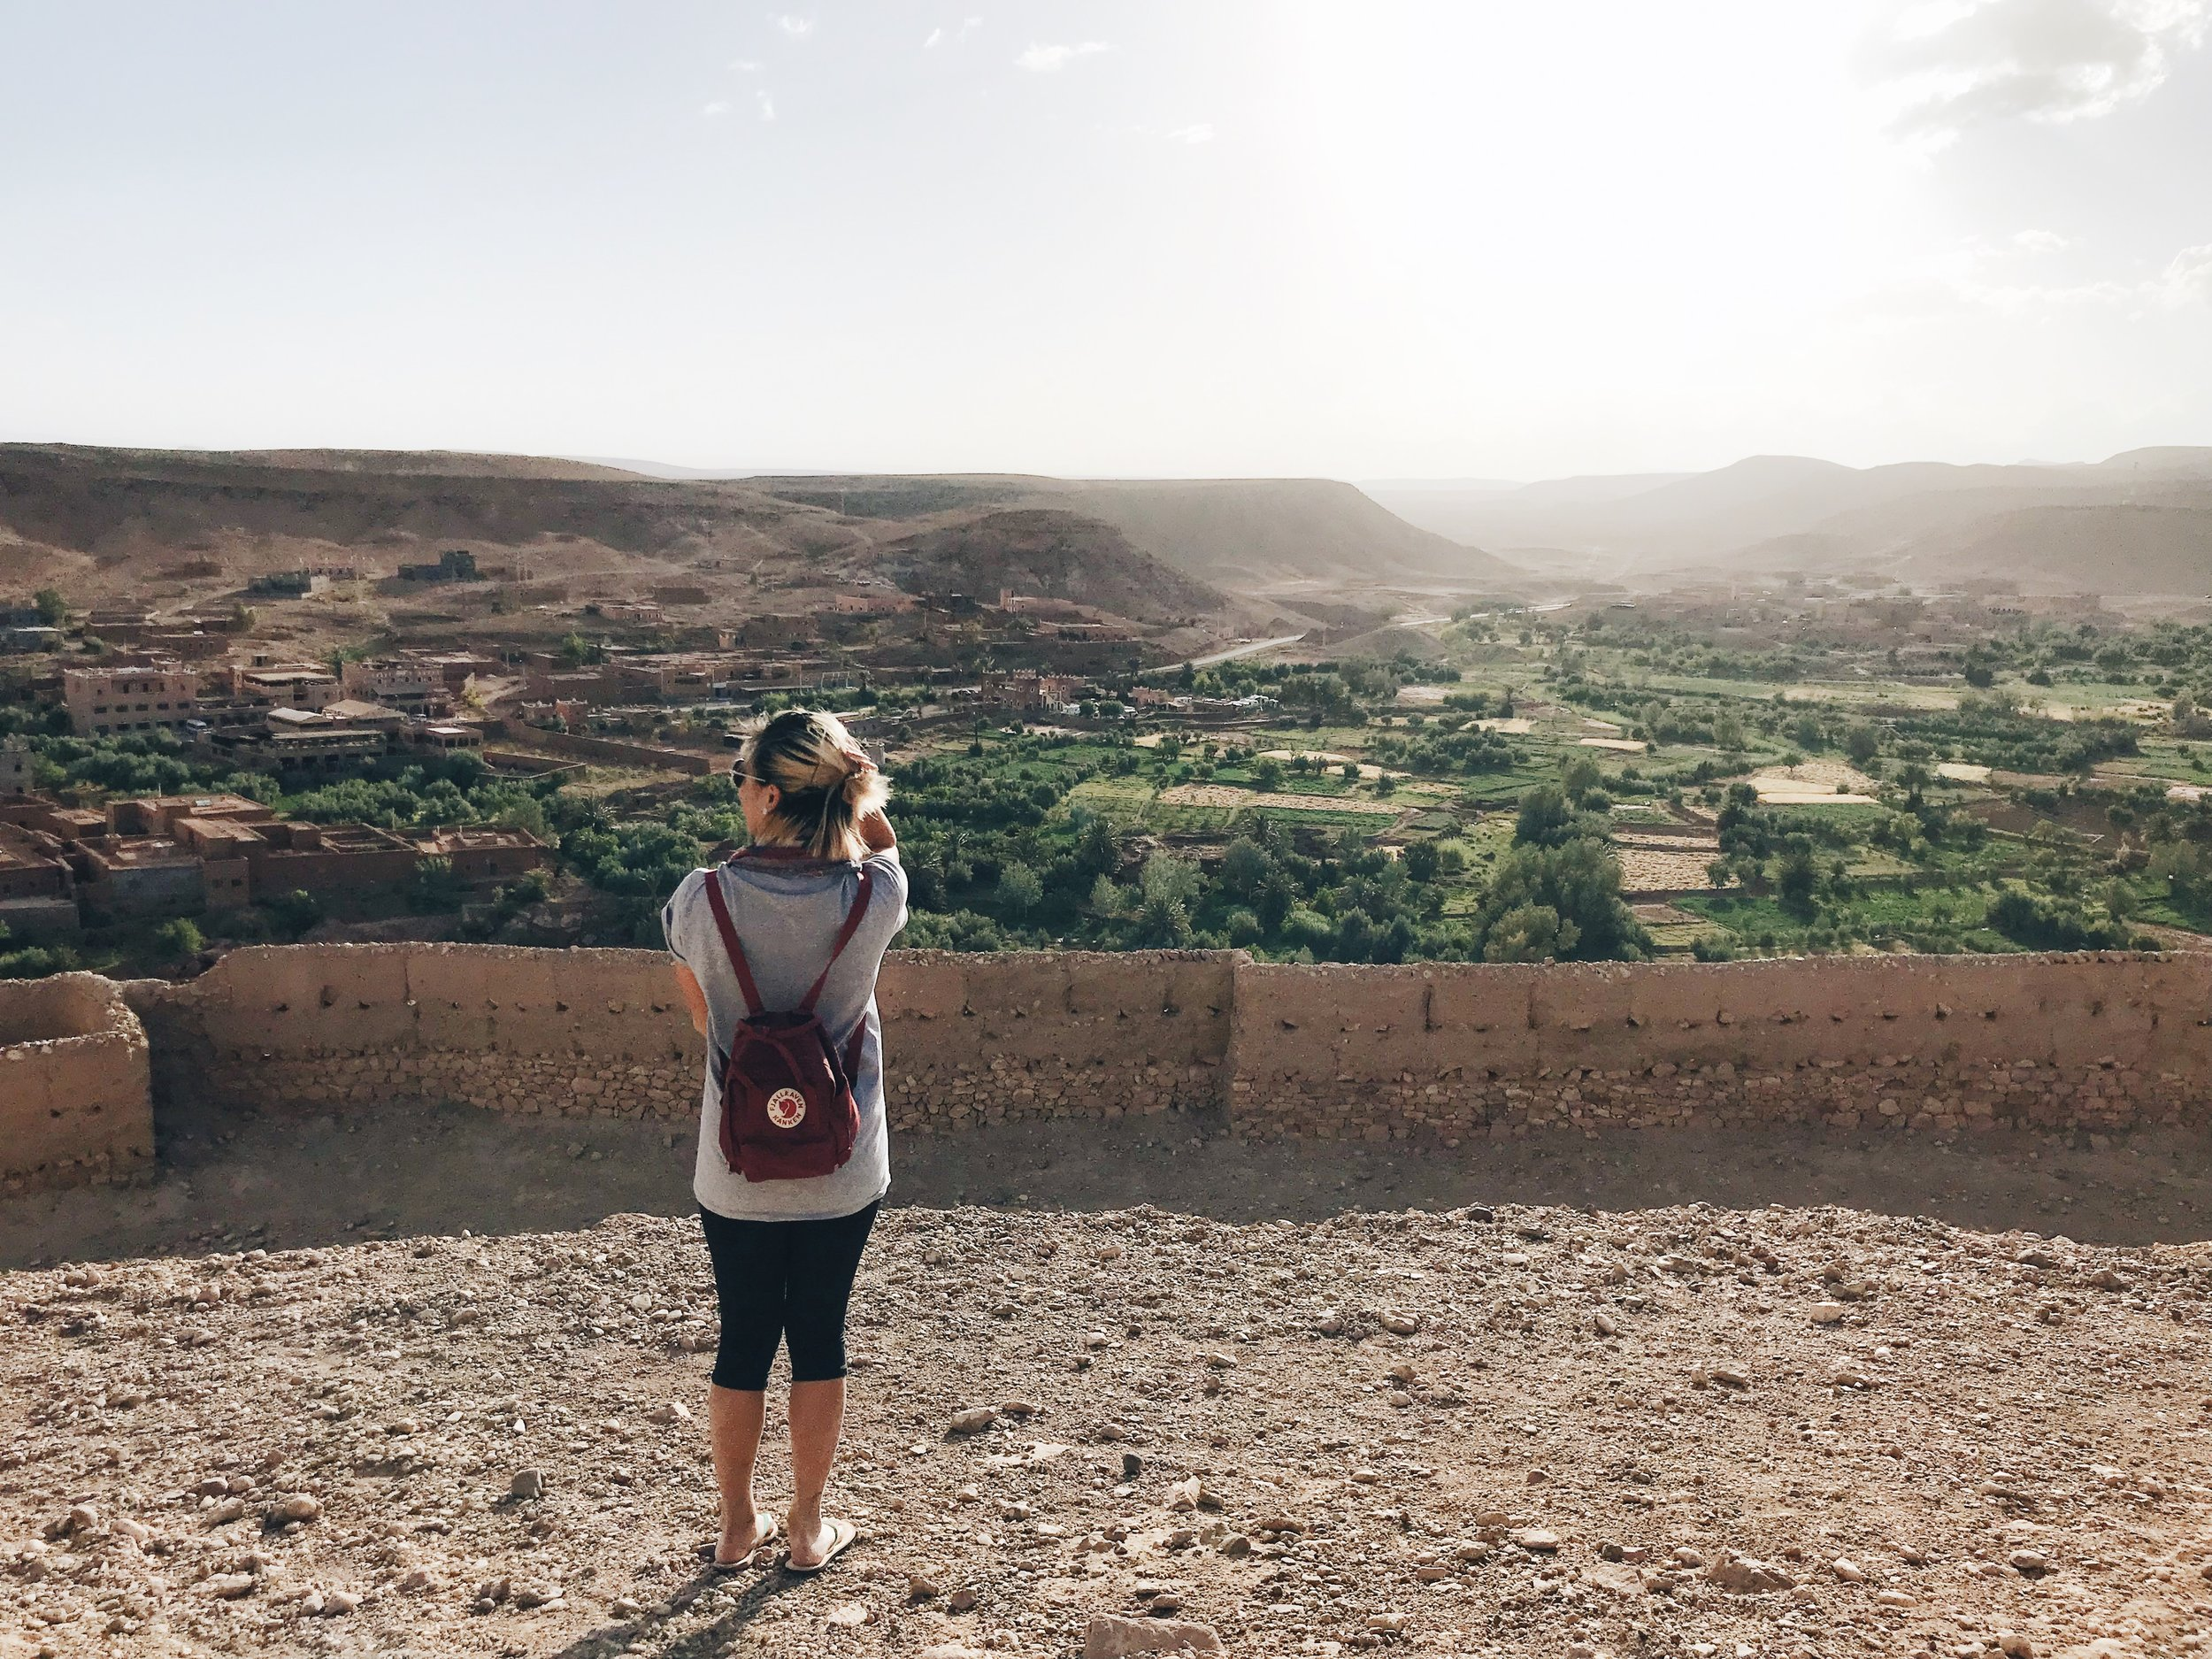 Candid travel pics while looking into the distance just work better with travel baes.